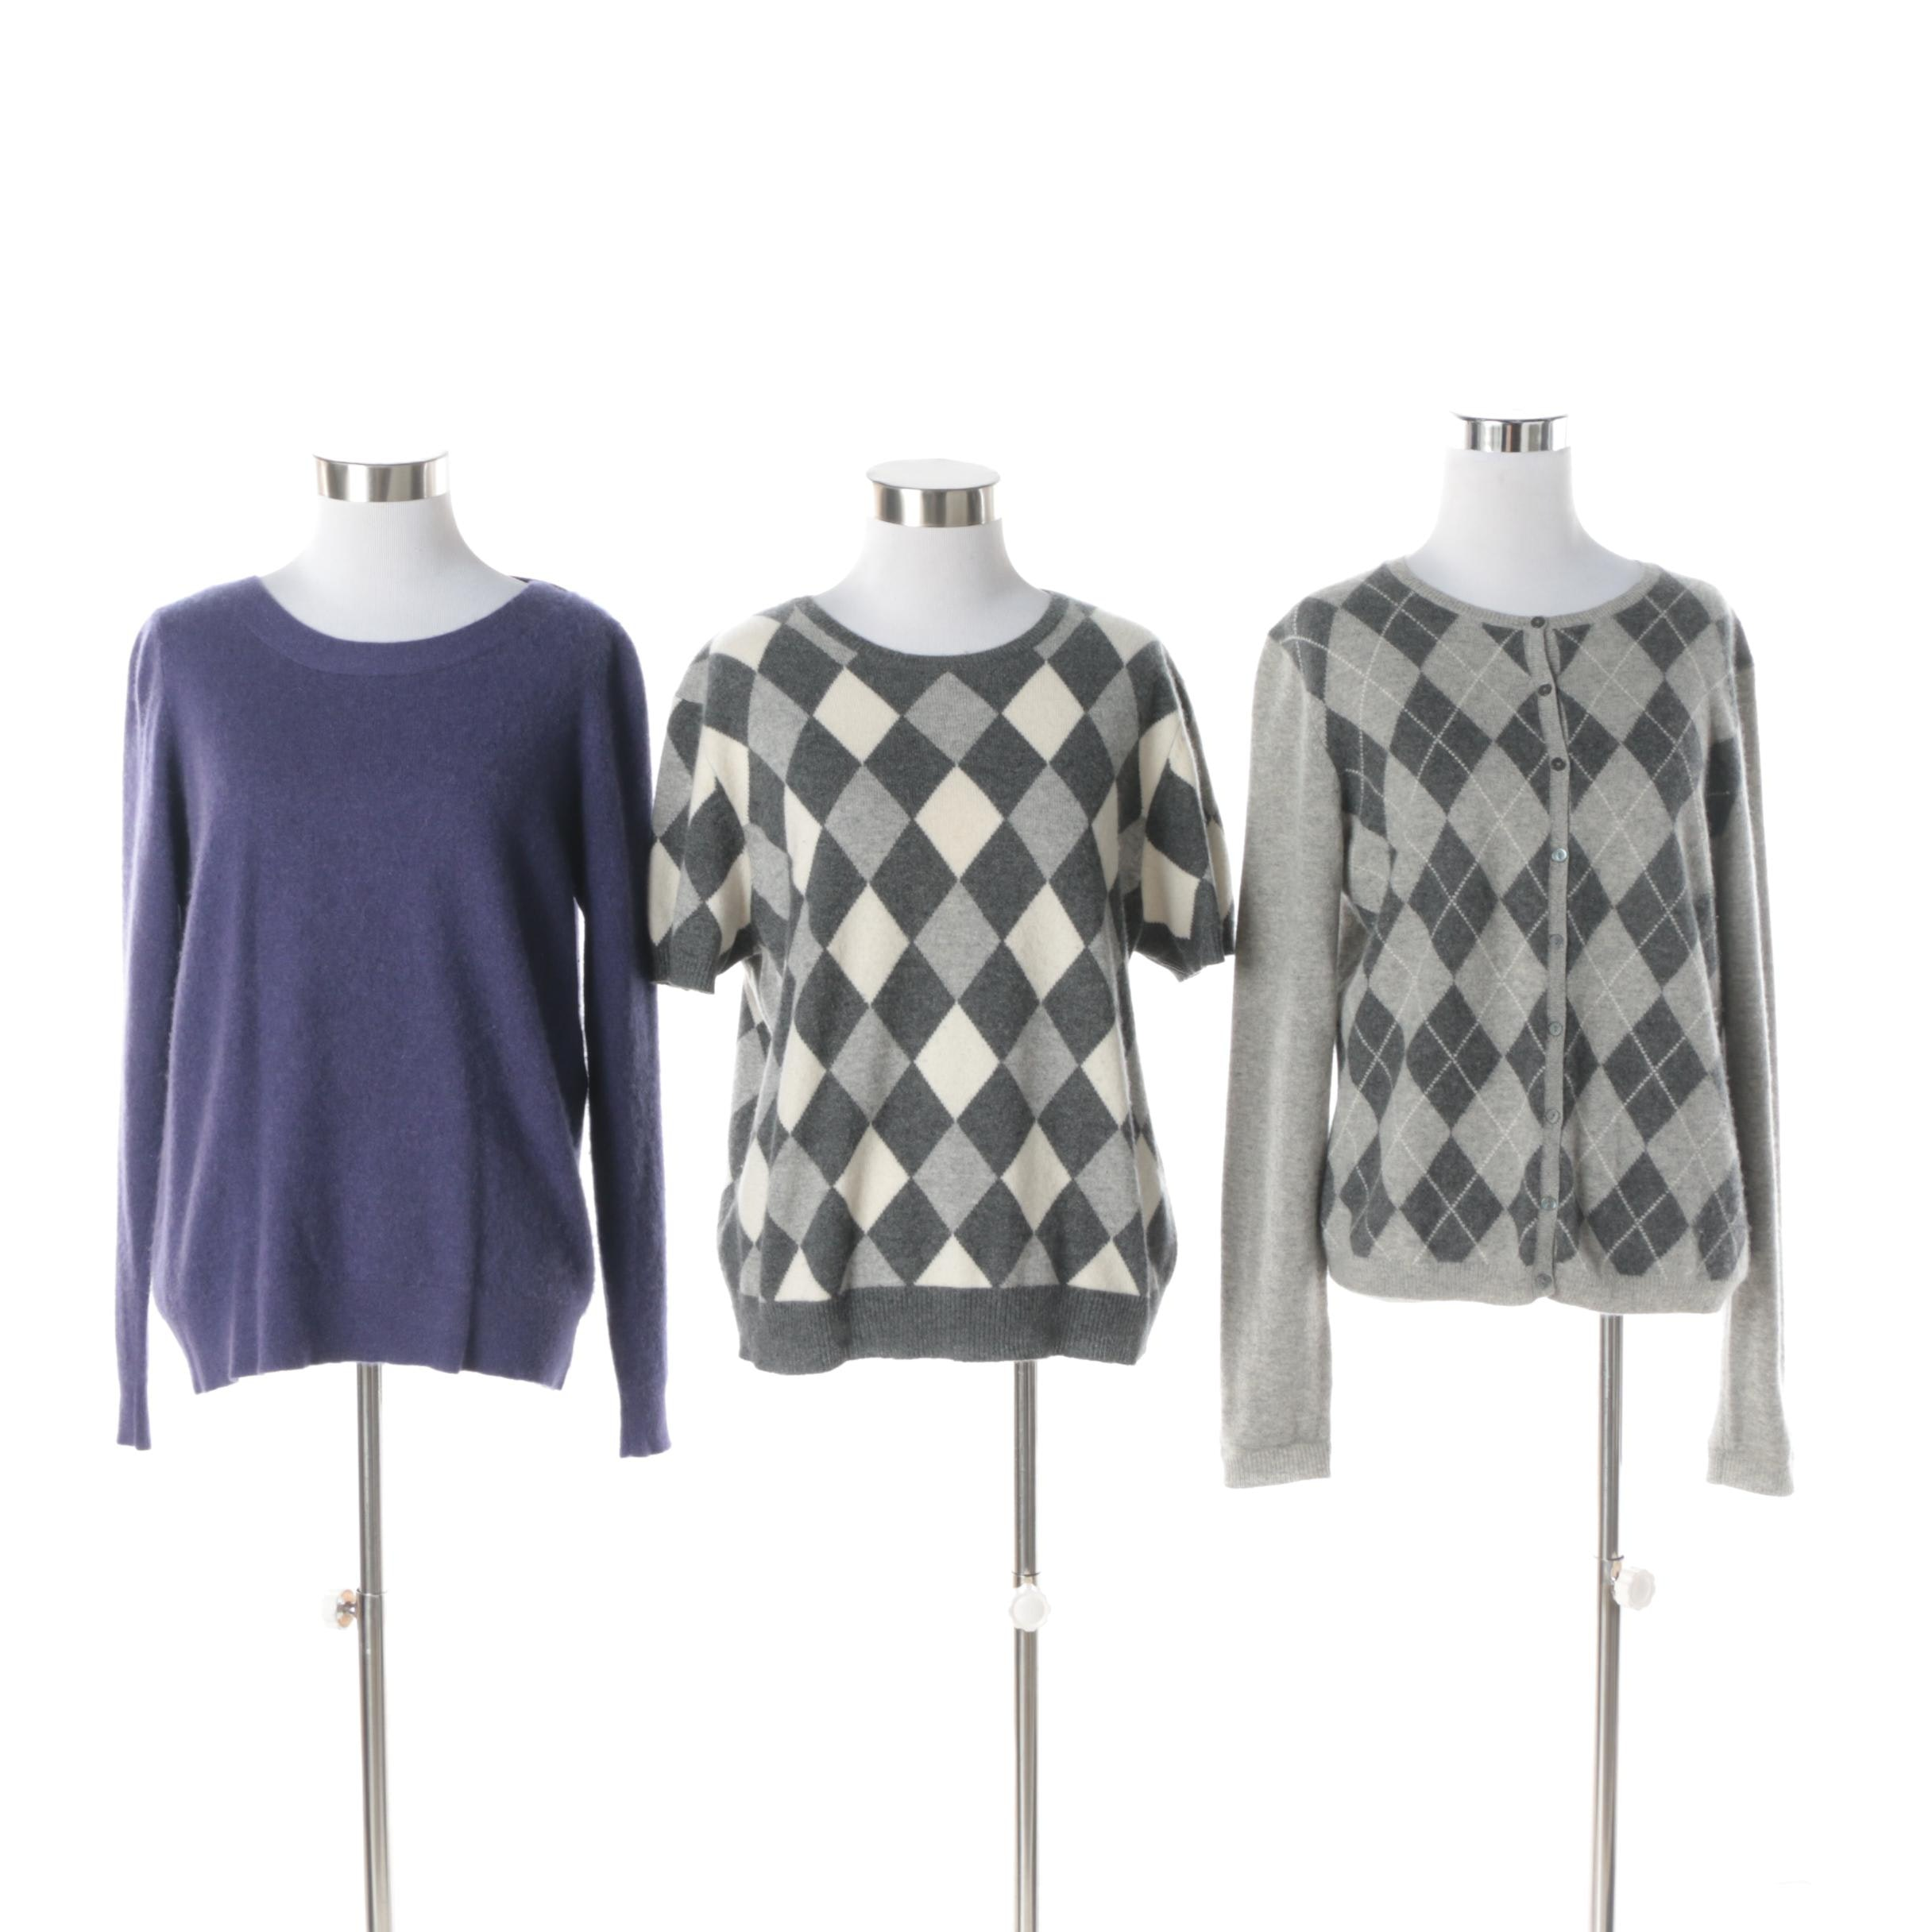 Women's Elena Solano and Lord & Taylor Cashmere Sweaters and Cardigan